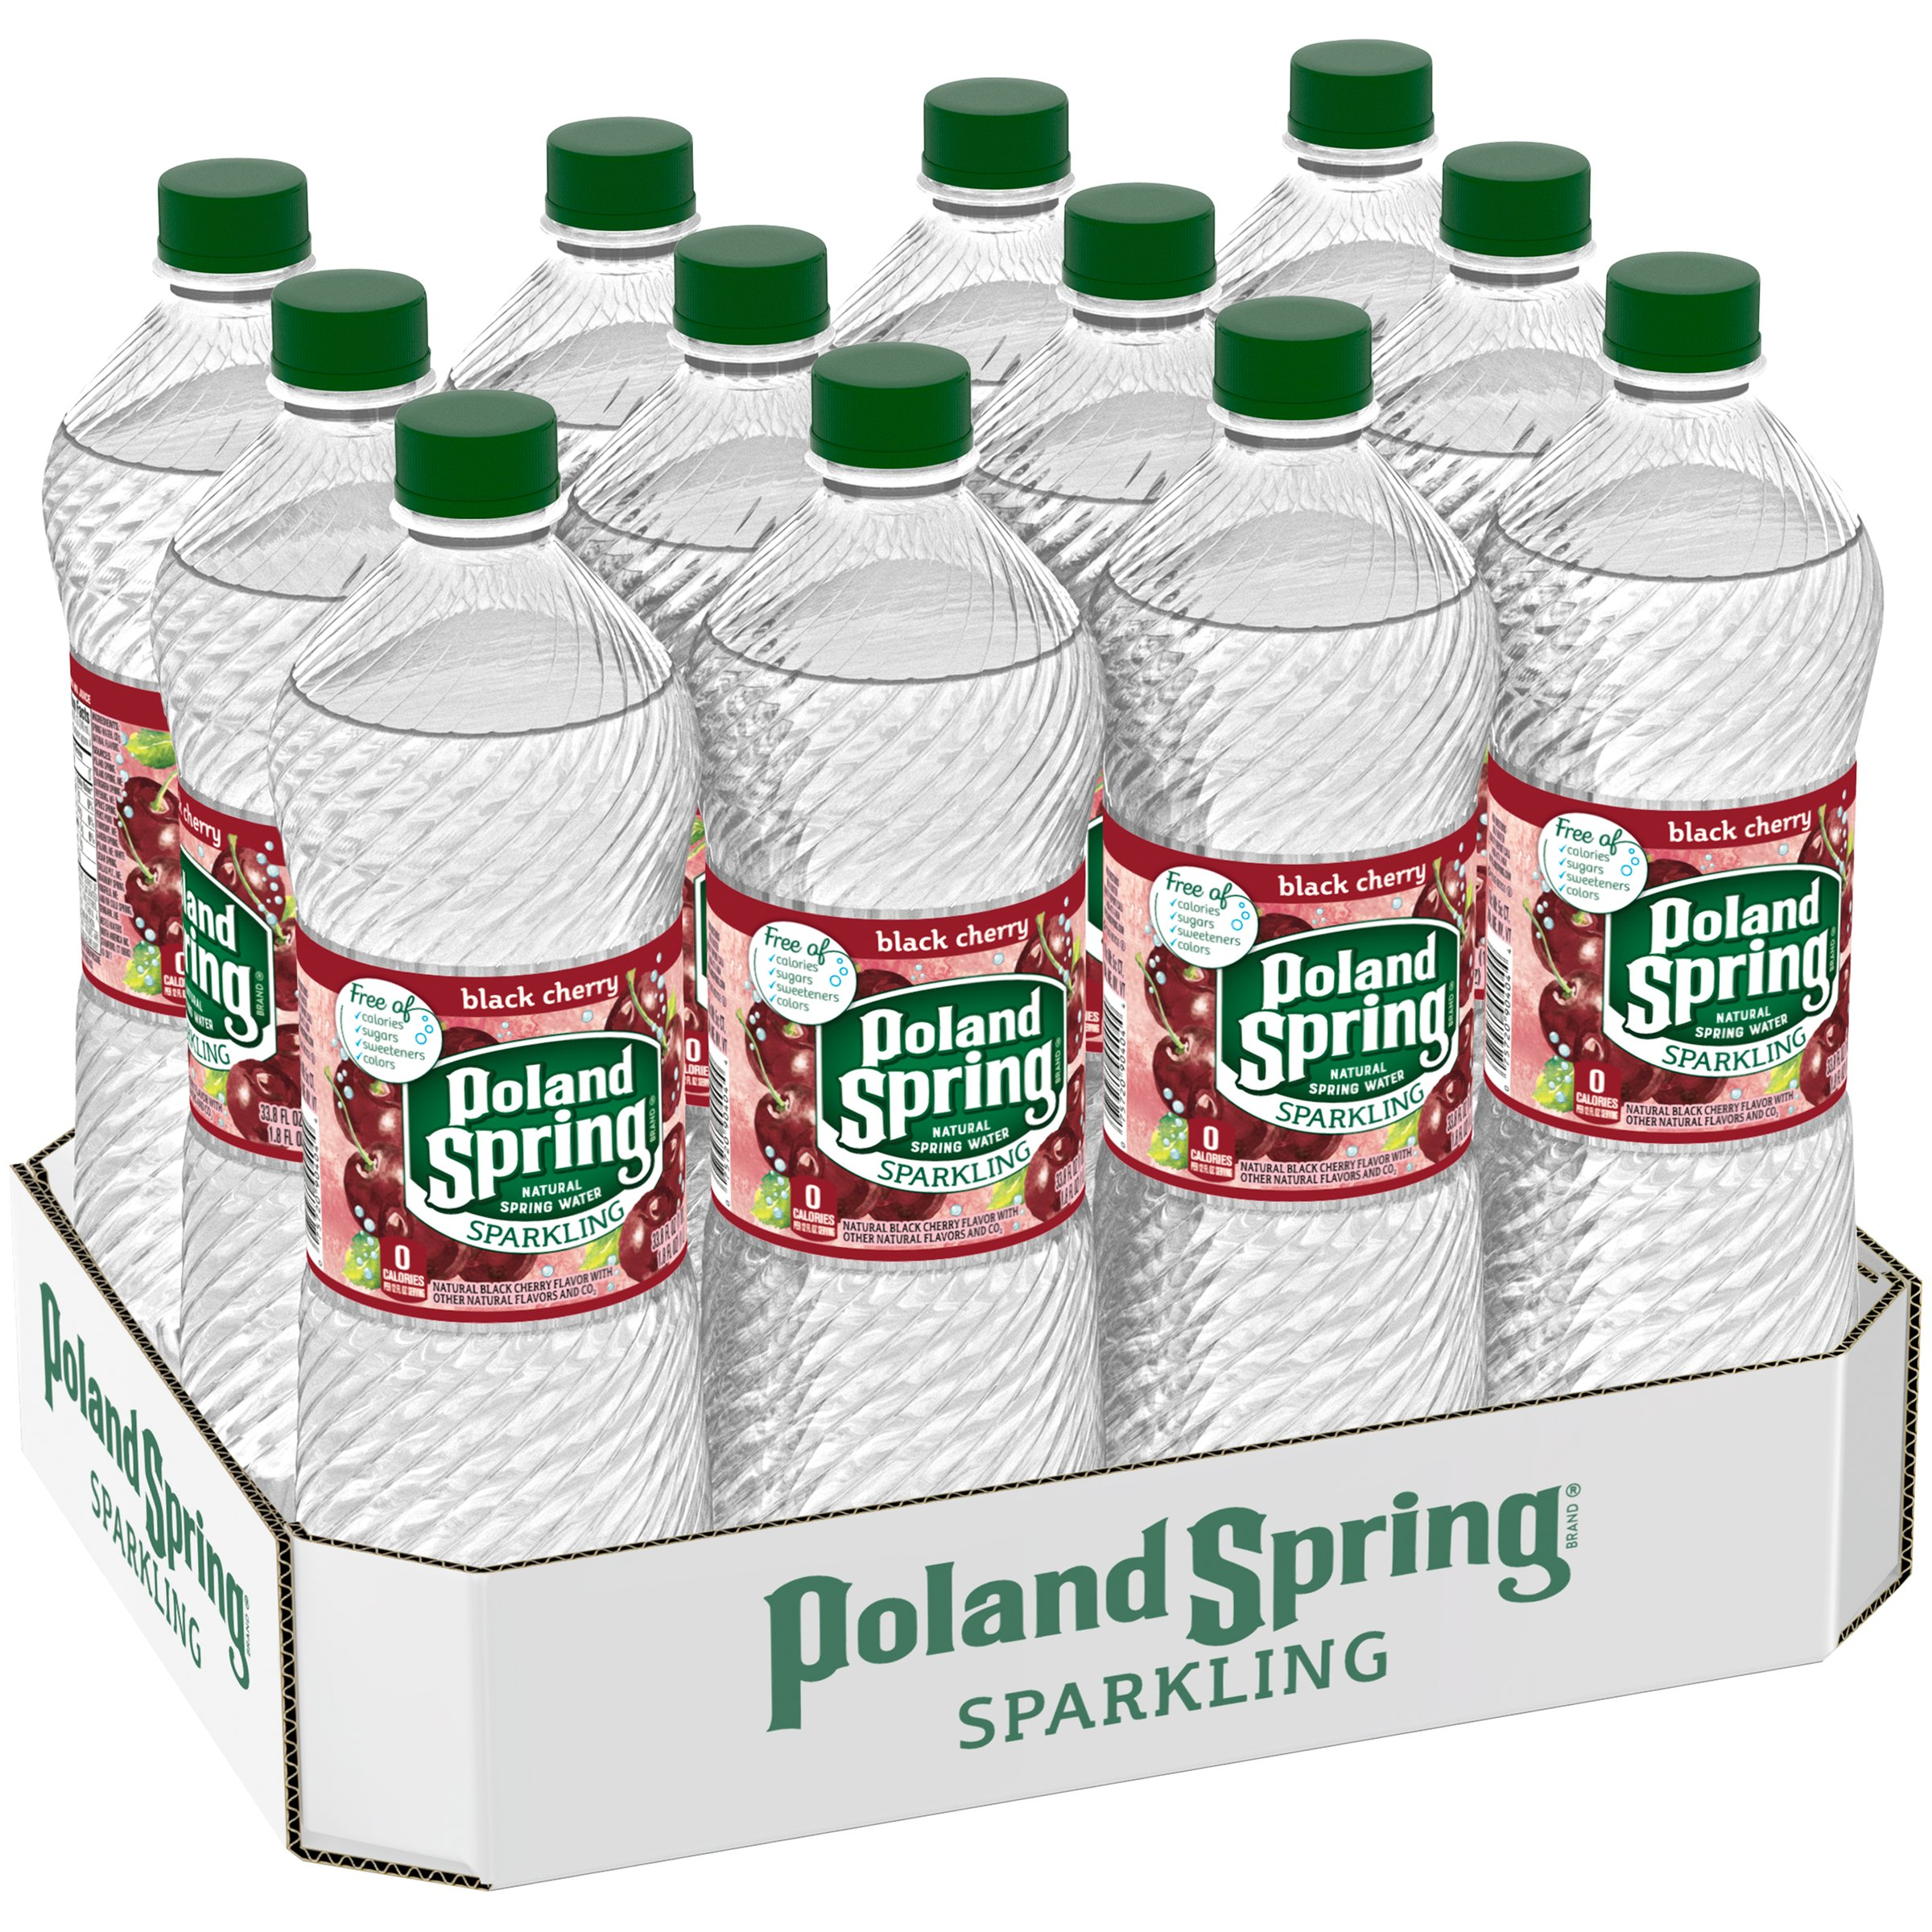 Poland Spring Sparkling Water, Black Cherry, 33.8 oz. Bottles (Pack of 12)